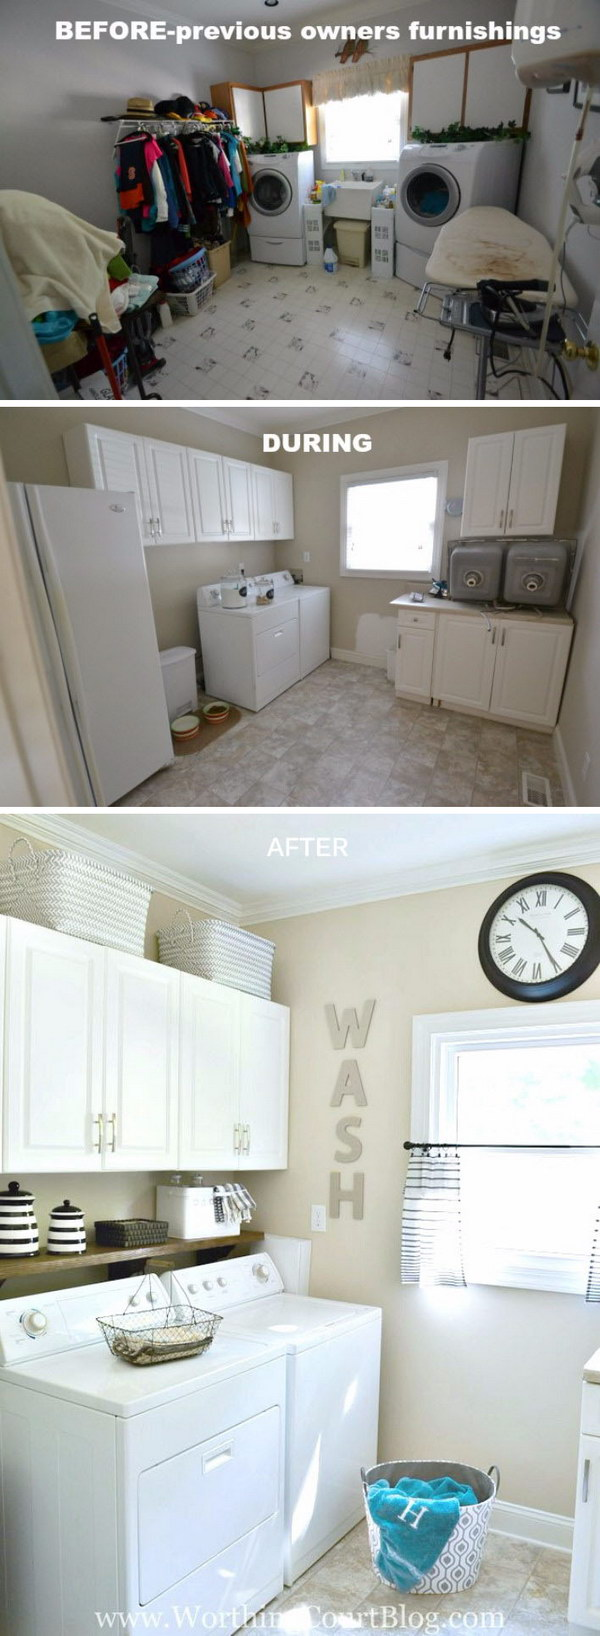 Laundry Room Reveal with farmhouse and Rustic Touches: From Messy to Orderly and Organized.